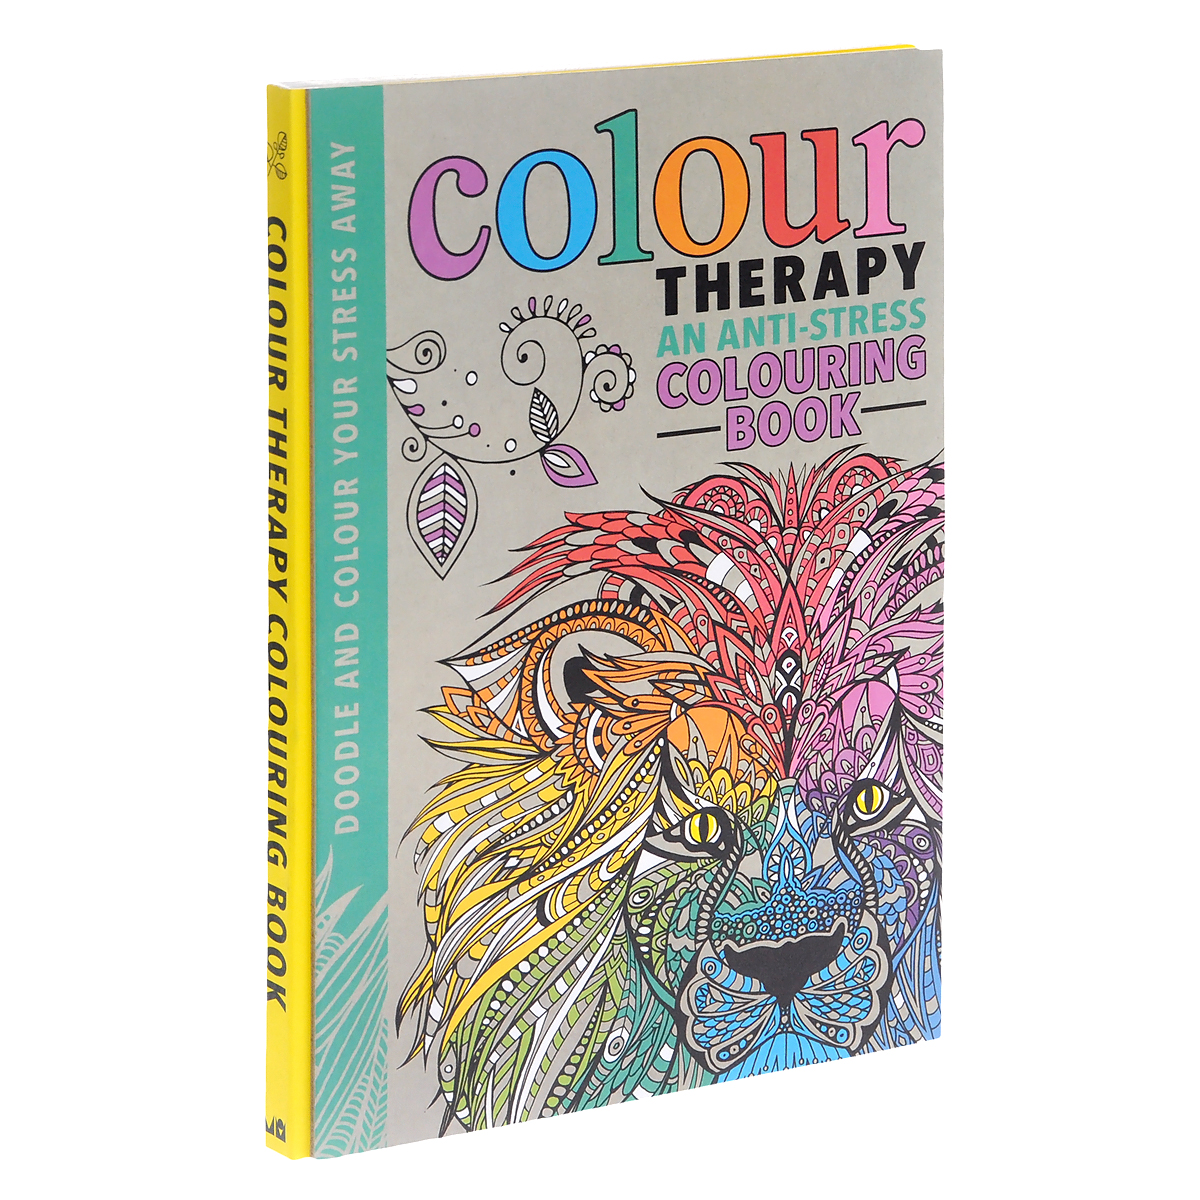 Colour Therapy: An Anti-Stress Colouring Book alice in wonderland colouring book secret garden style coloring book relieve stress kill time graffiti painting drawing book